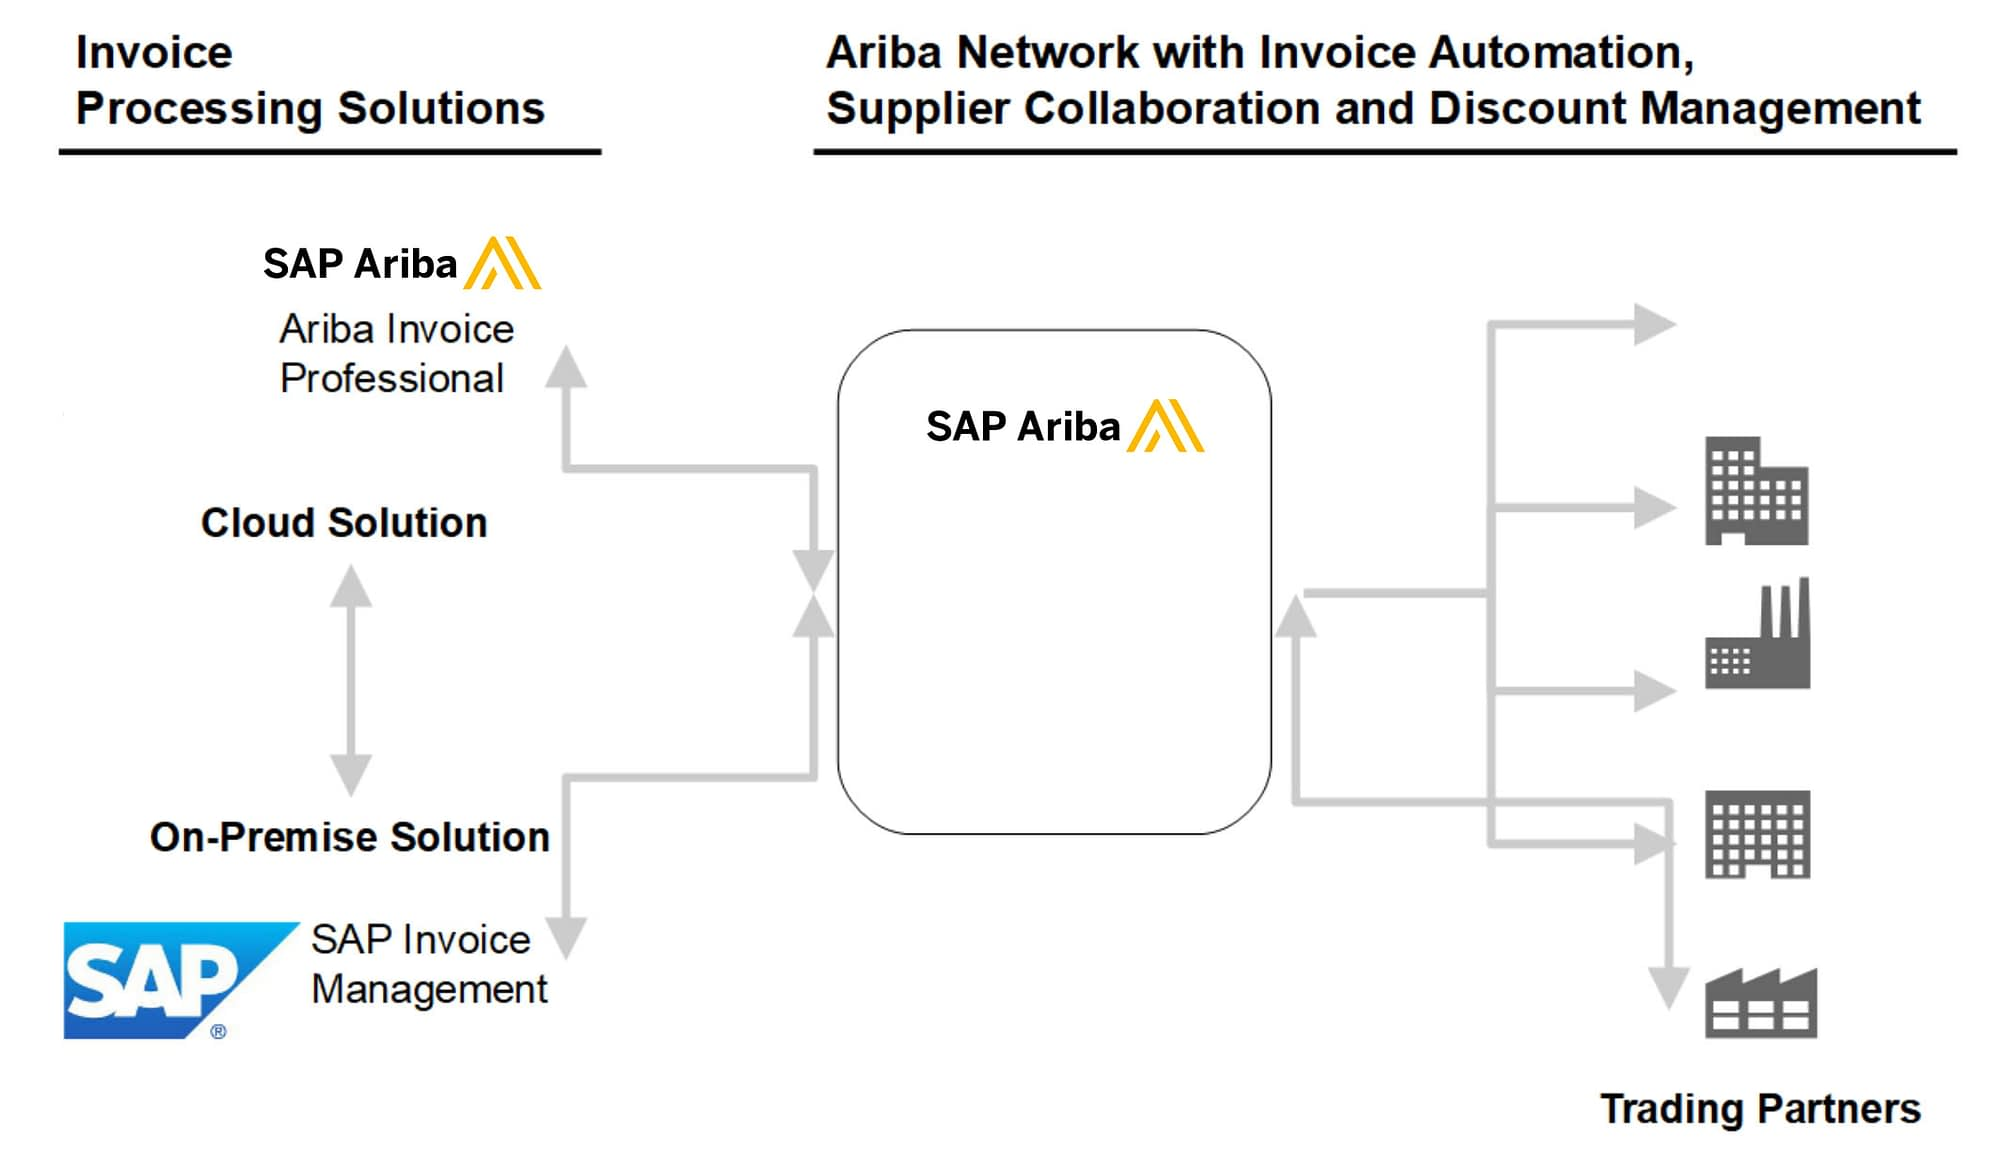 sap-ariba-invoice-automation-process